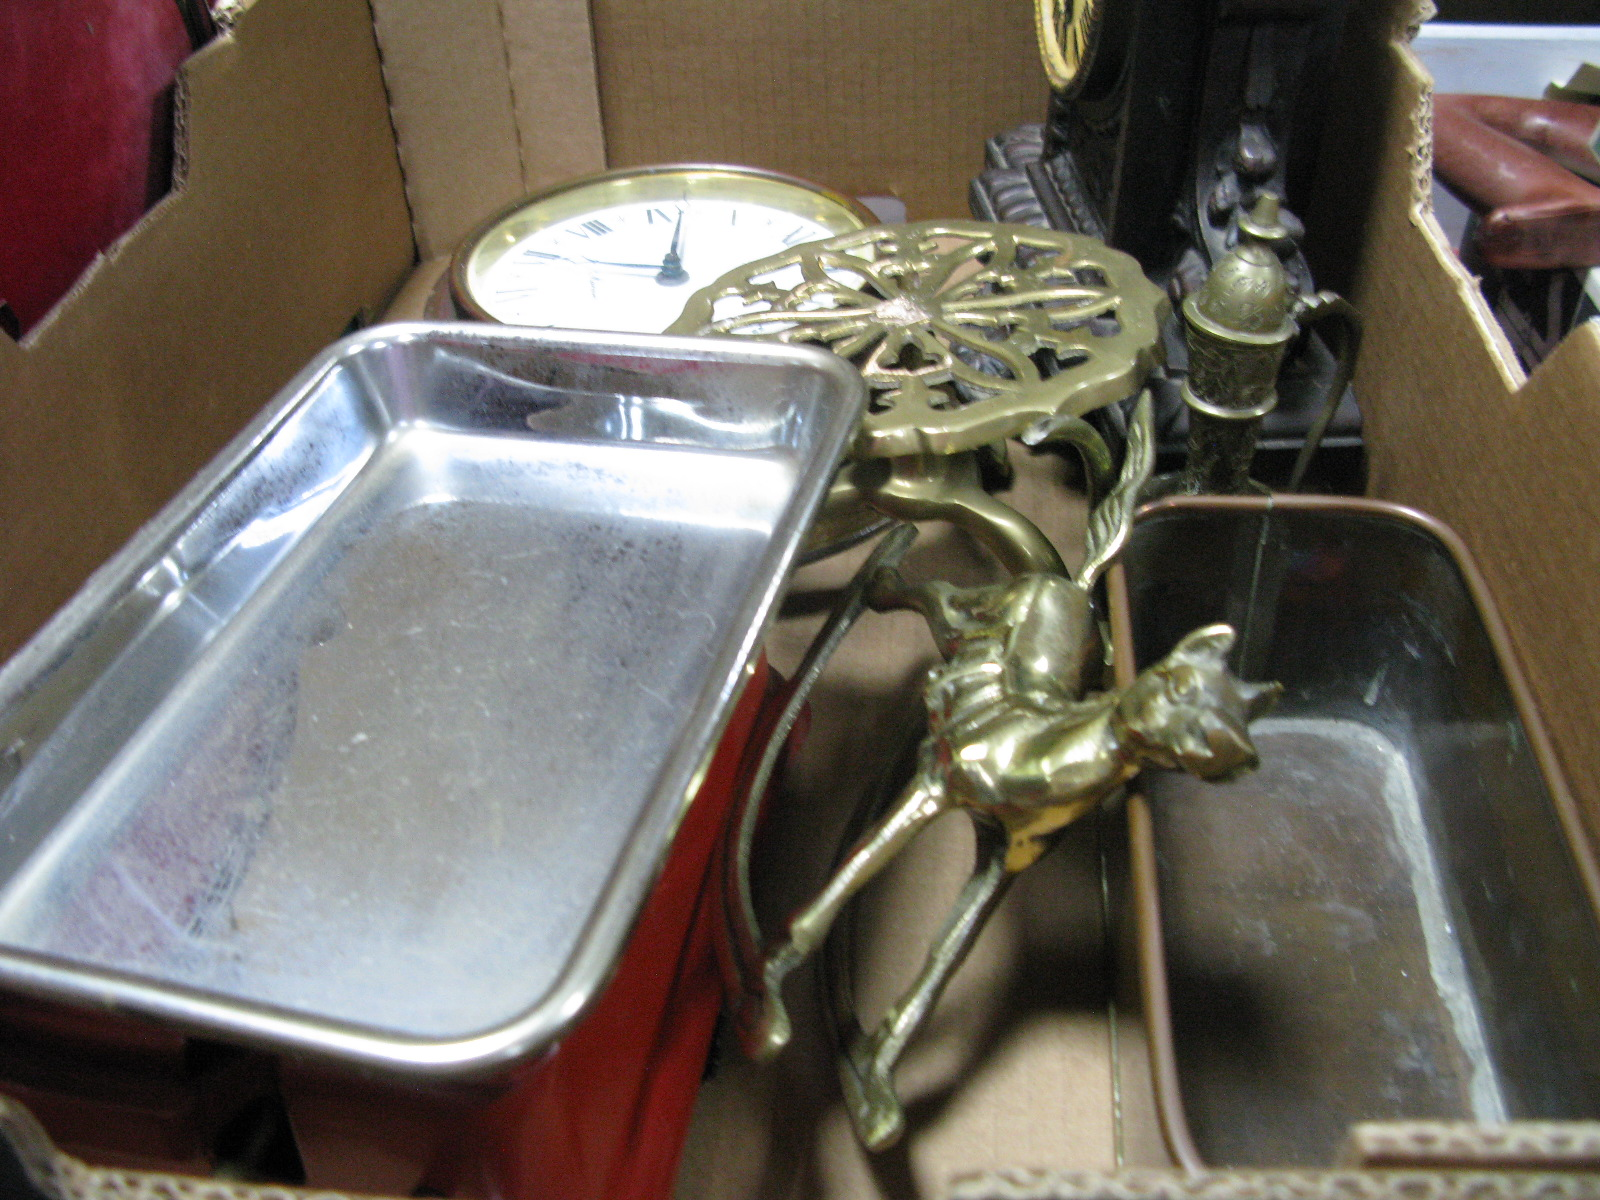 Lot 1055 - French Style Mantel Clock, weighing scales, brass trivet, quartz clock, etc:- One Box